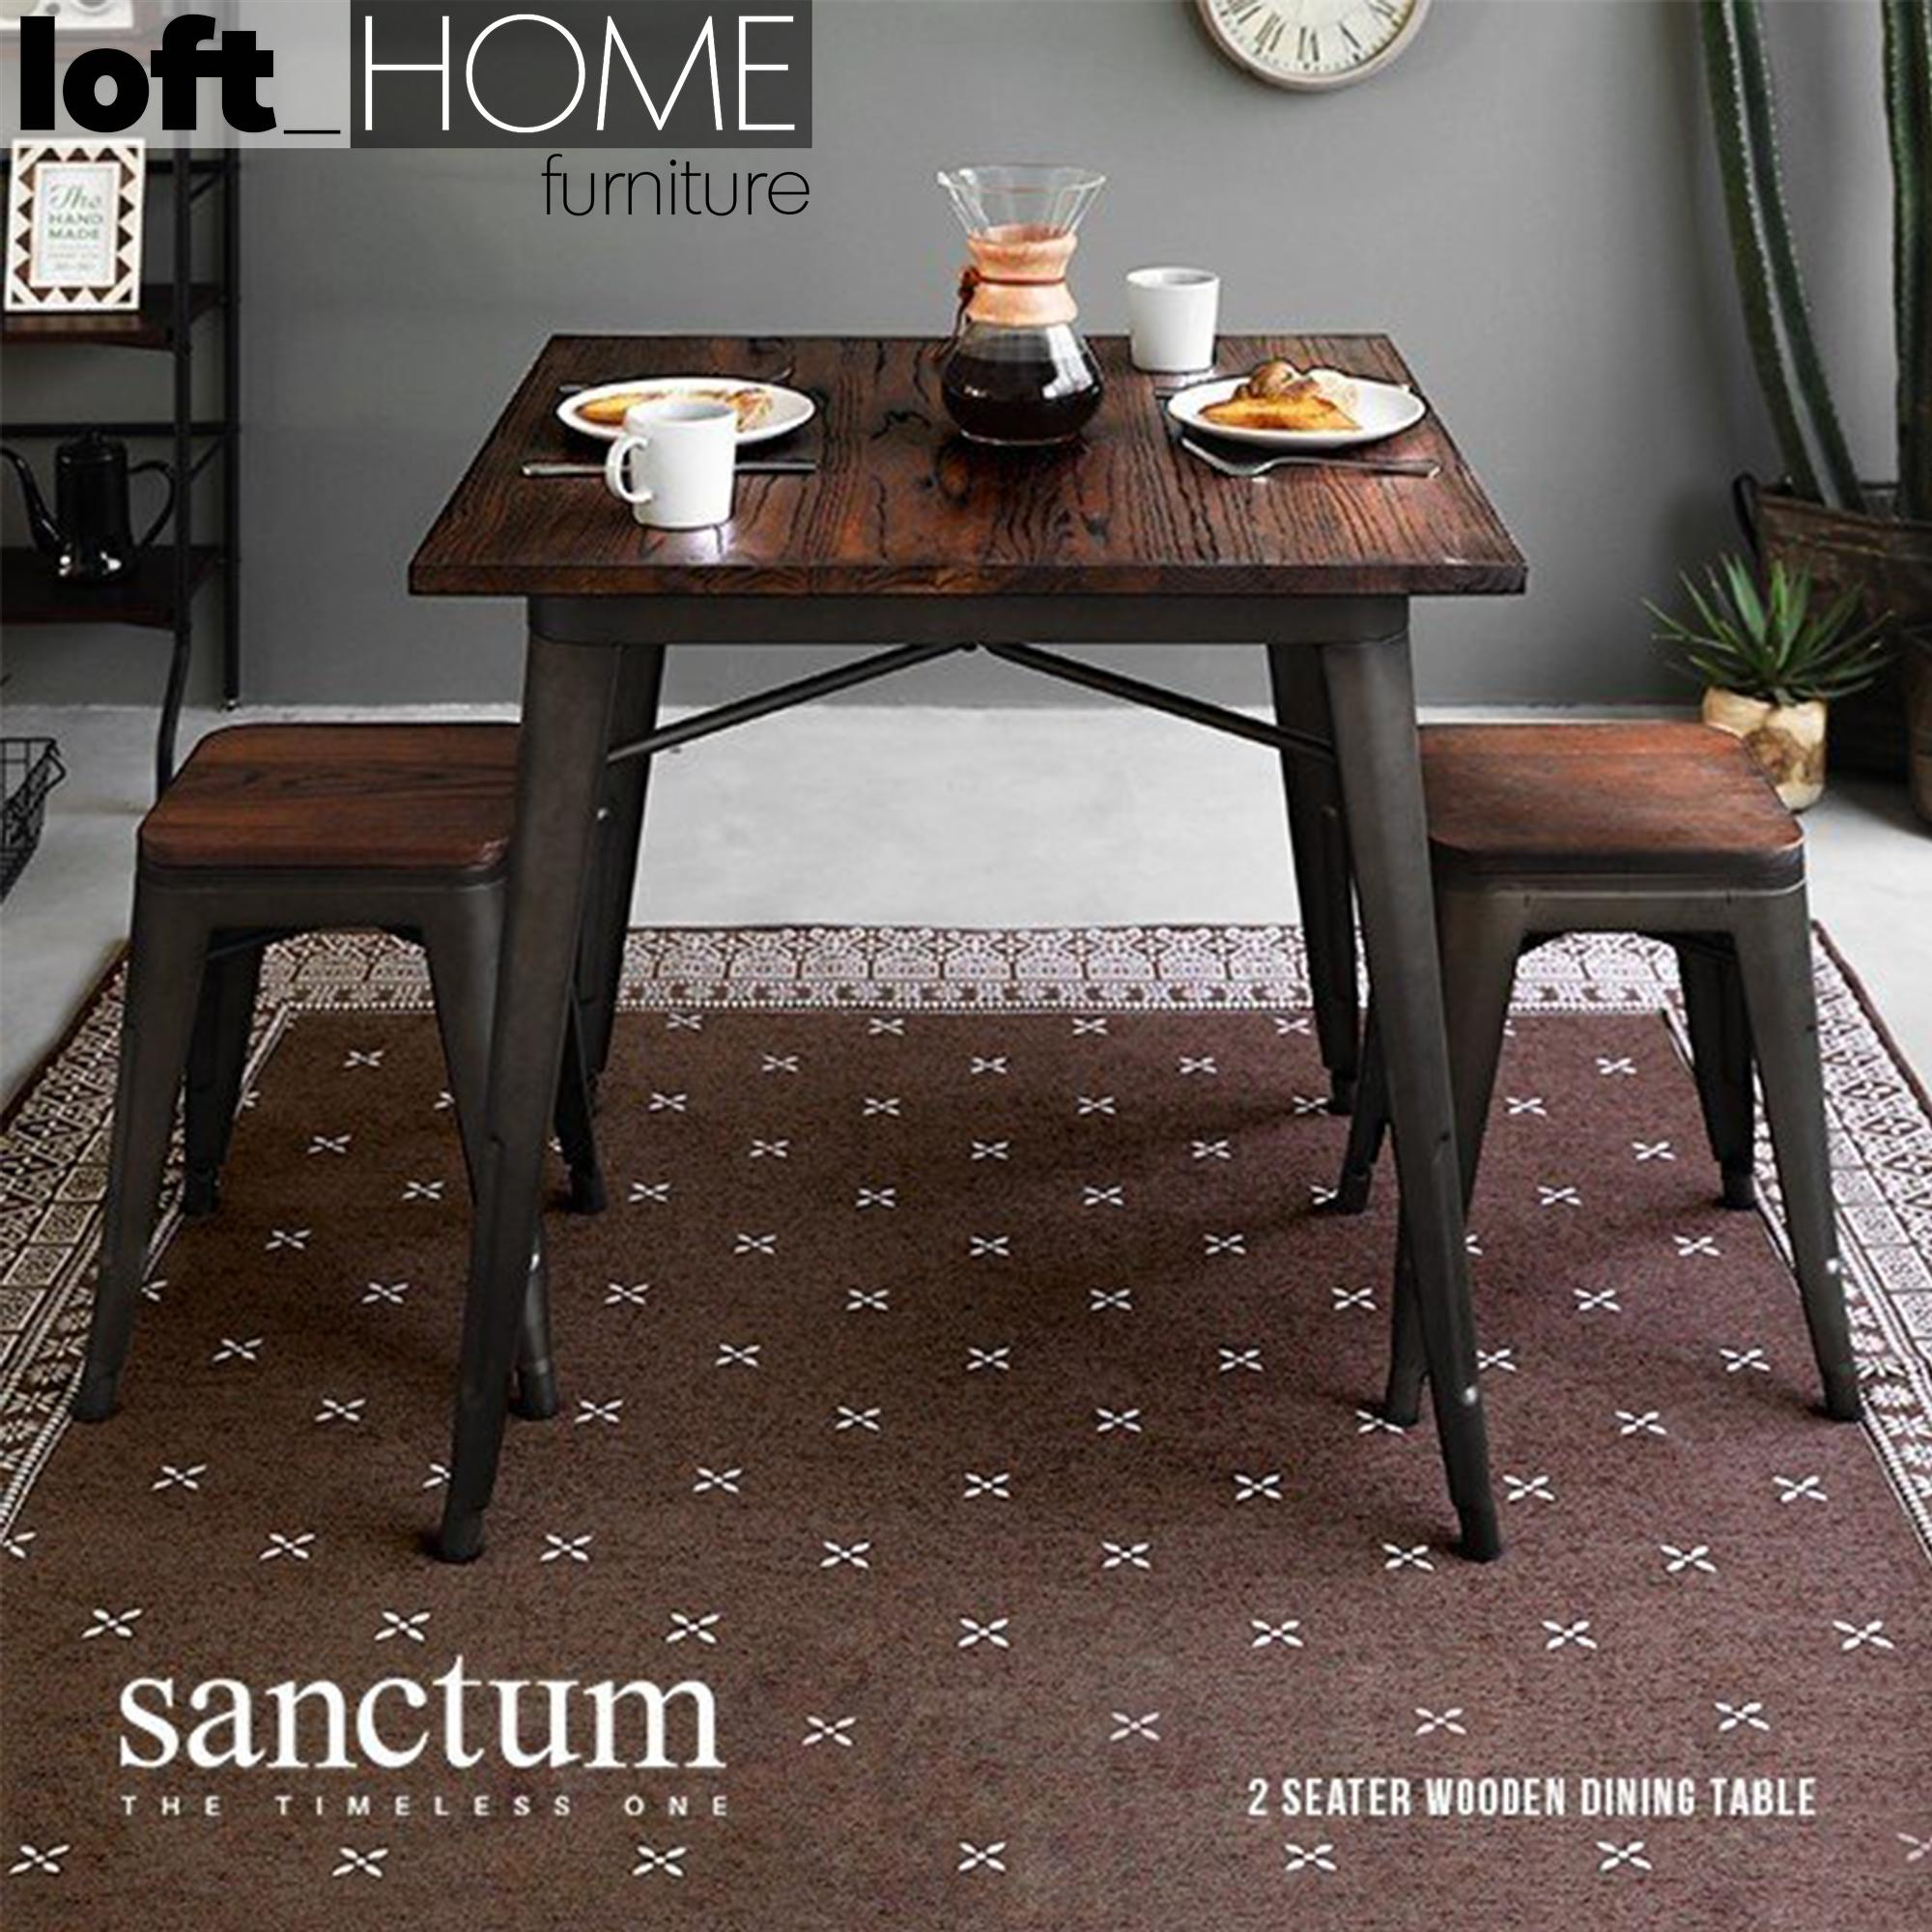 Dining Table Square  - Sanctum